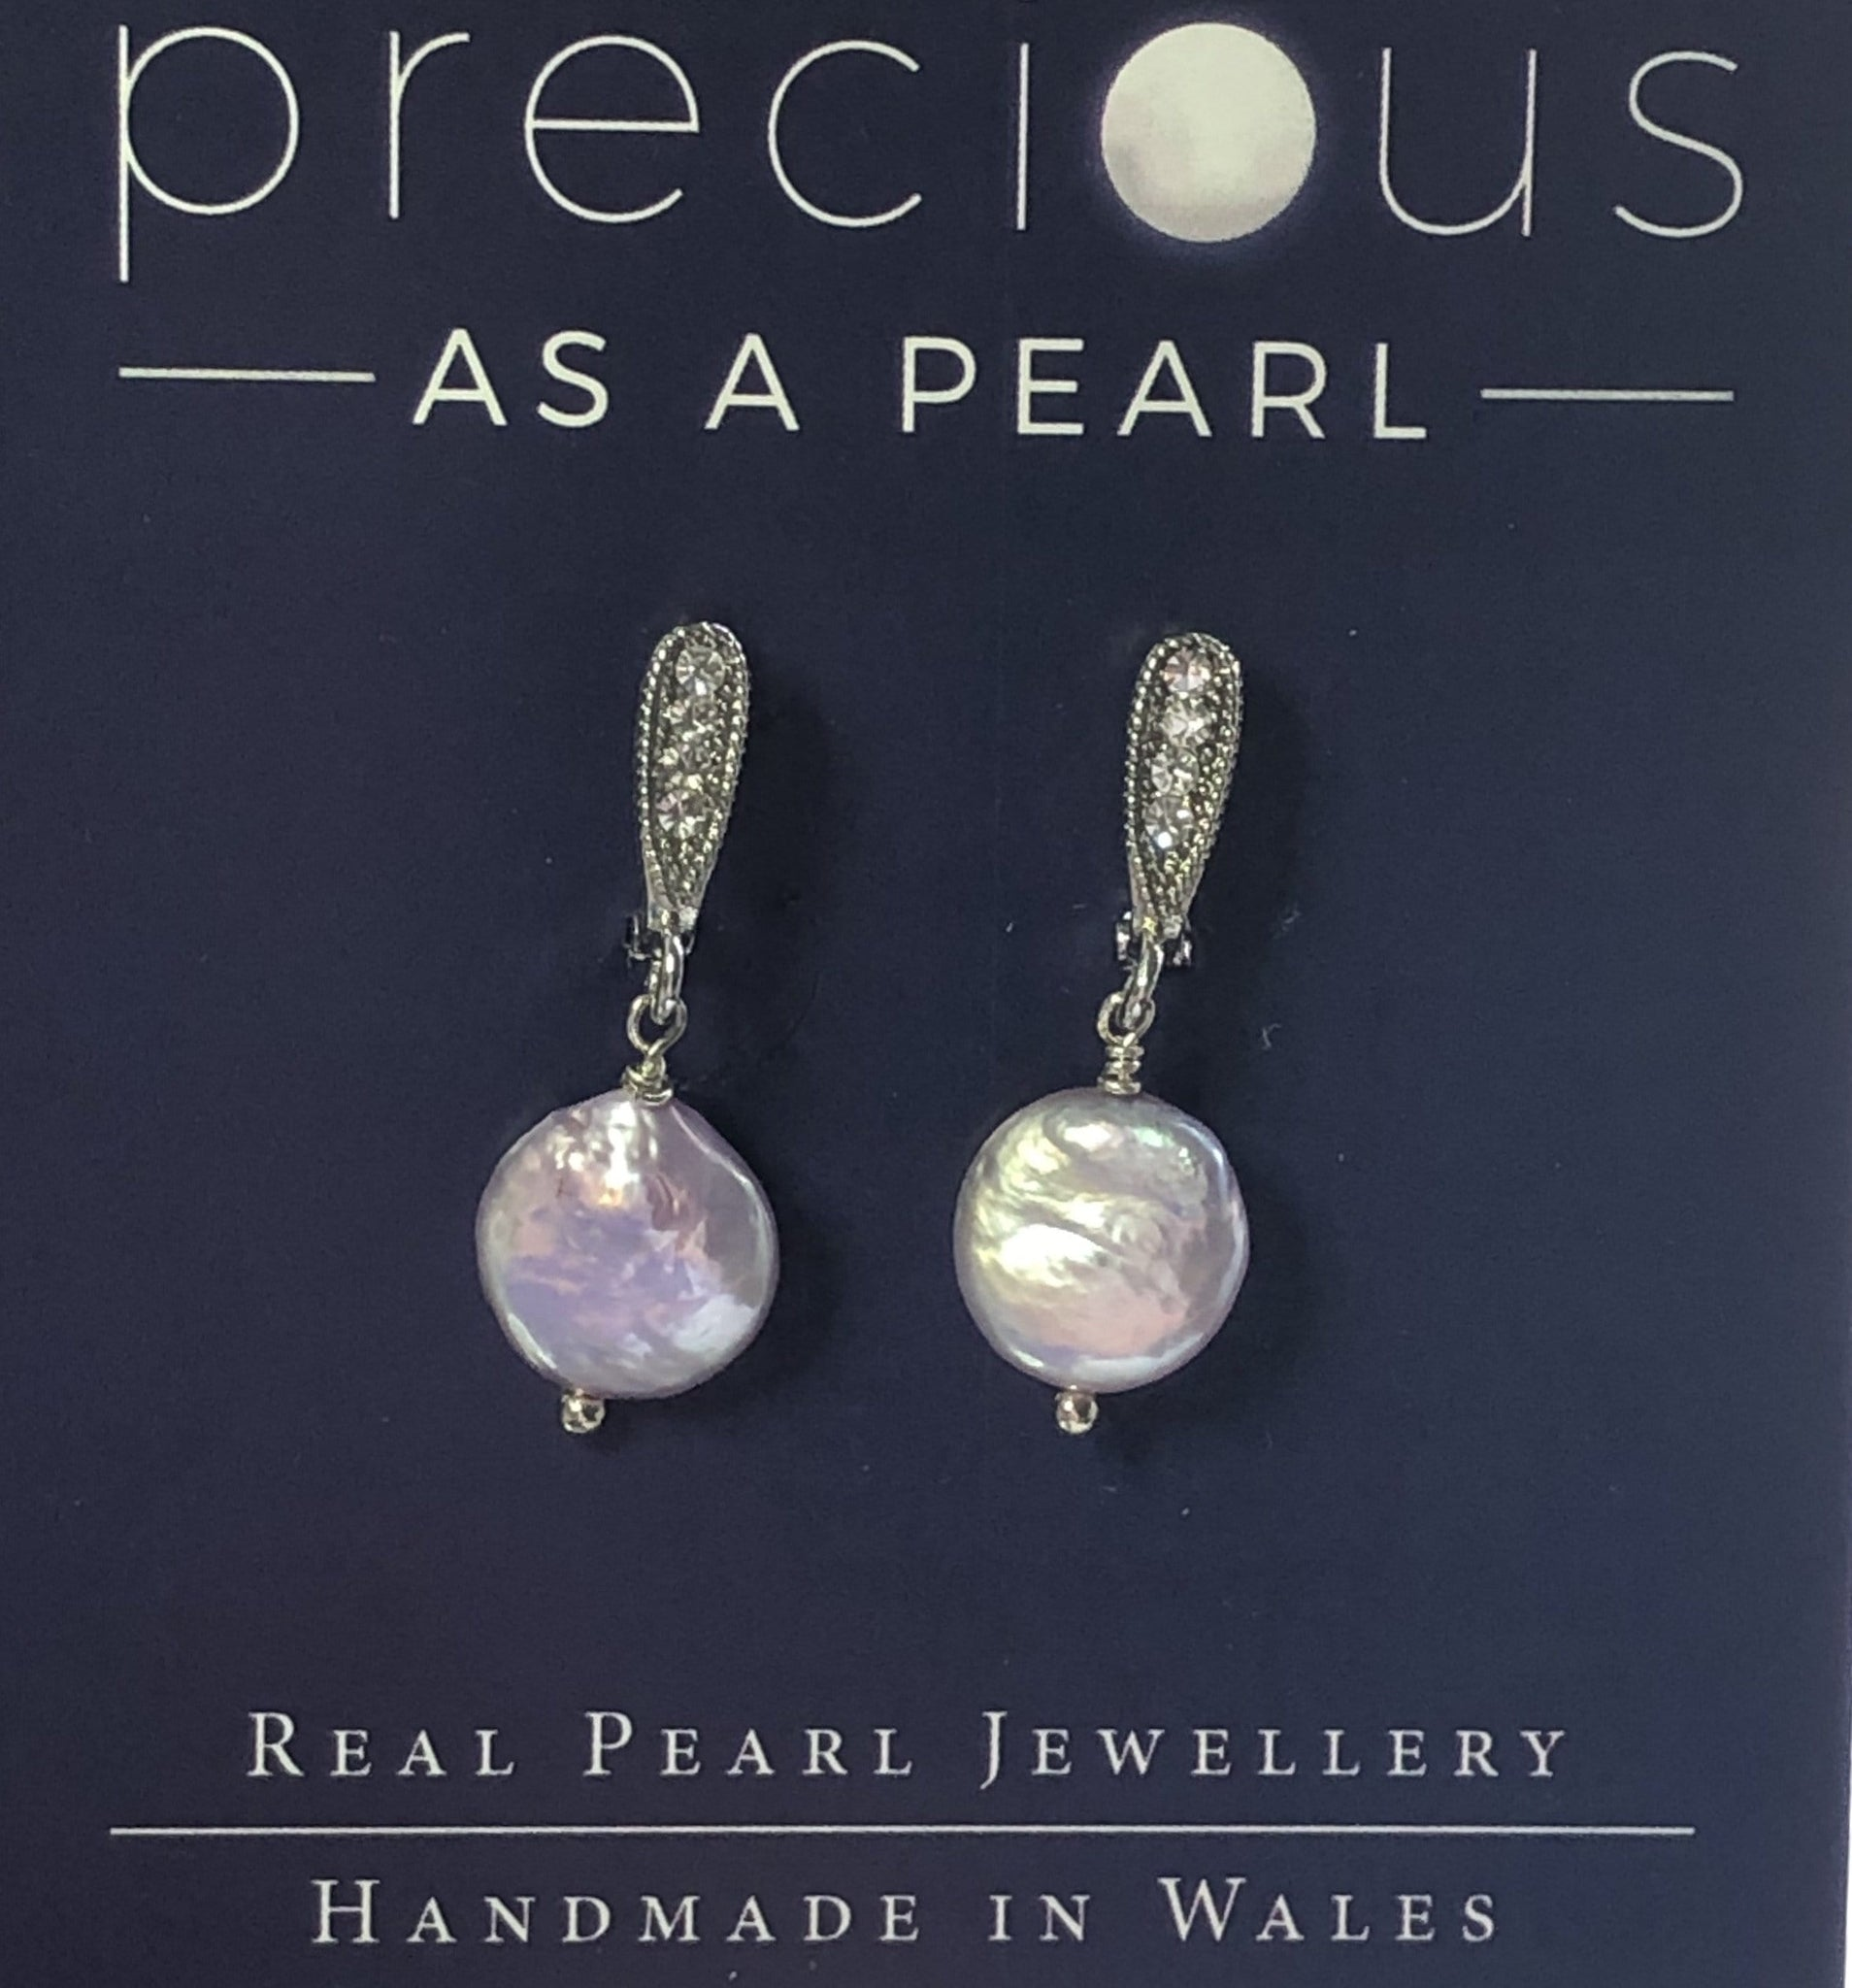 Earrings: Pink freshwater pearl coin drop earrings :classic - Precious as a Pearl